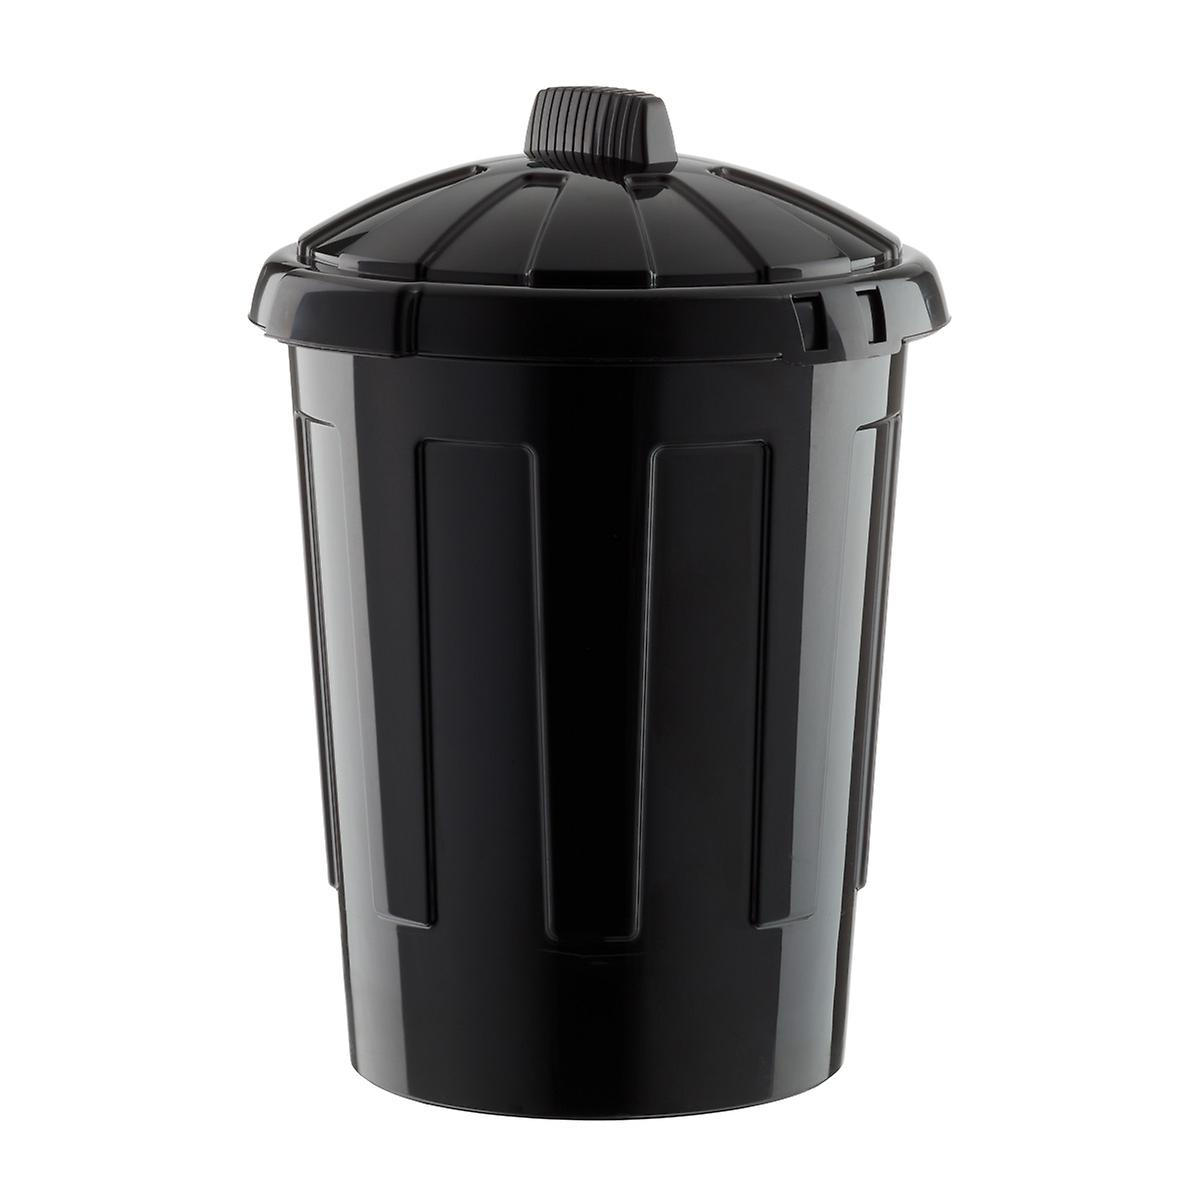 Black 21 gal. / 80L Round Plastic Trash Can